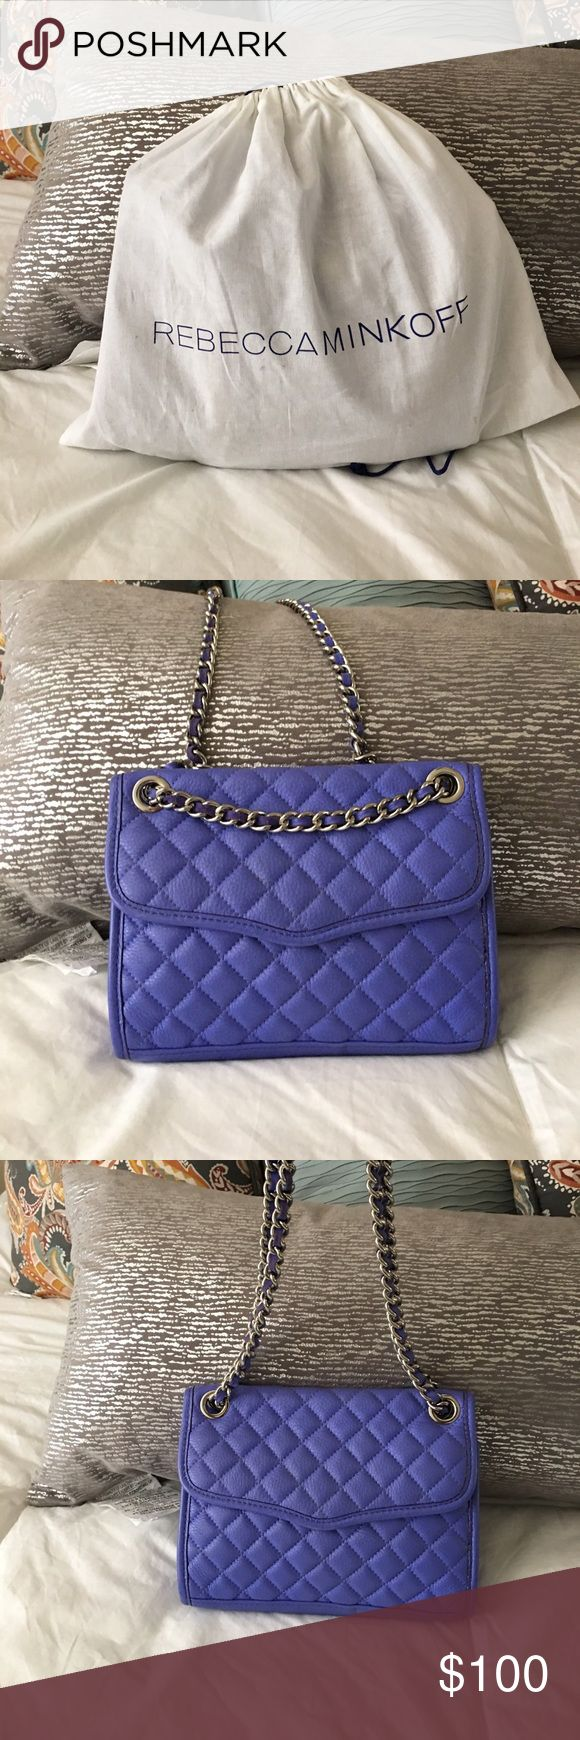 Rebecca Minkoff purse Excellent used condition! Beautiful bluish/purple for summer nights out. Wear it long across your body or on your wrist/shoulder. Rebecca Minkoff Bags Crossbody Bags